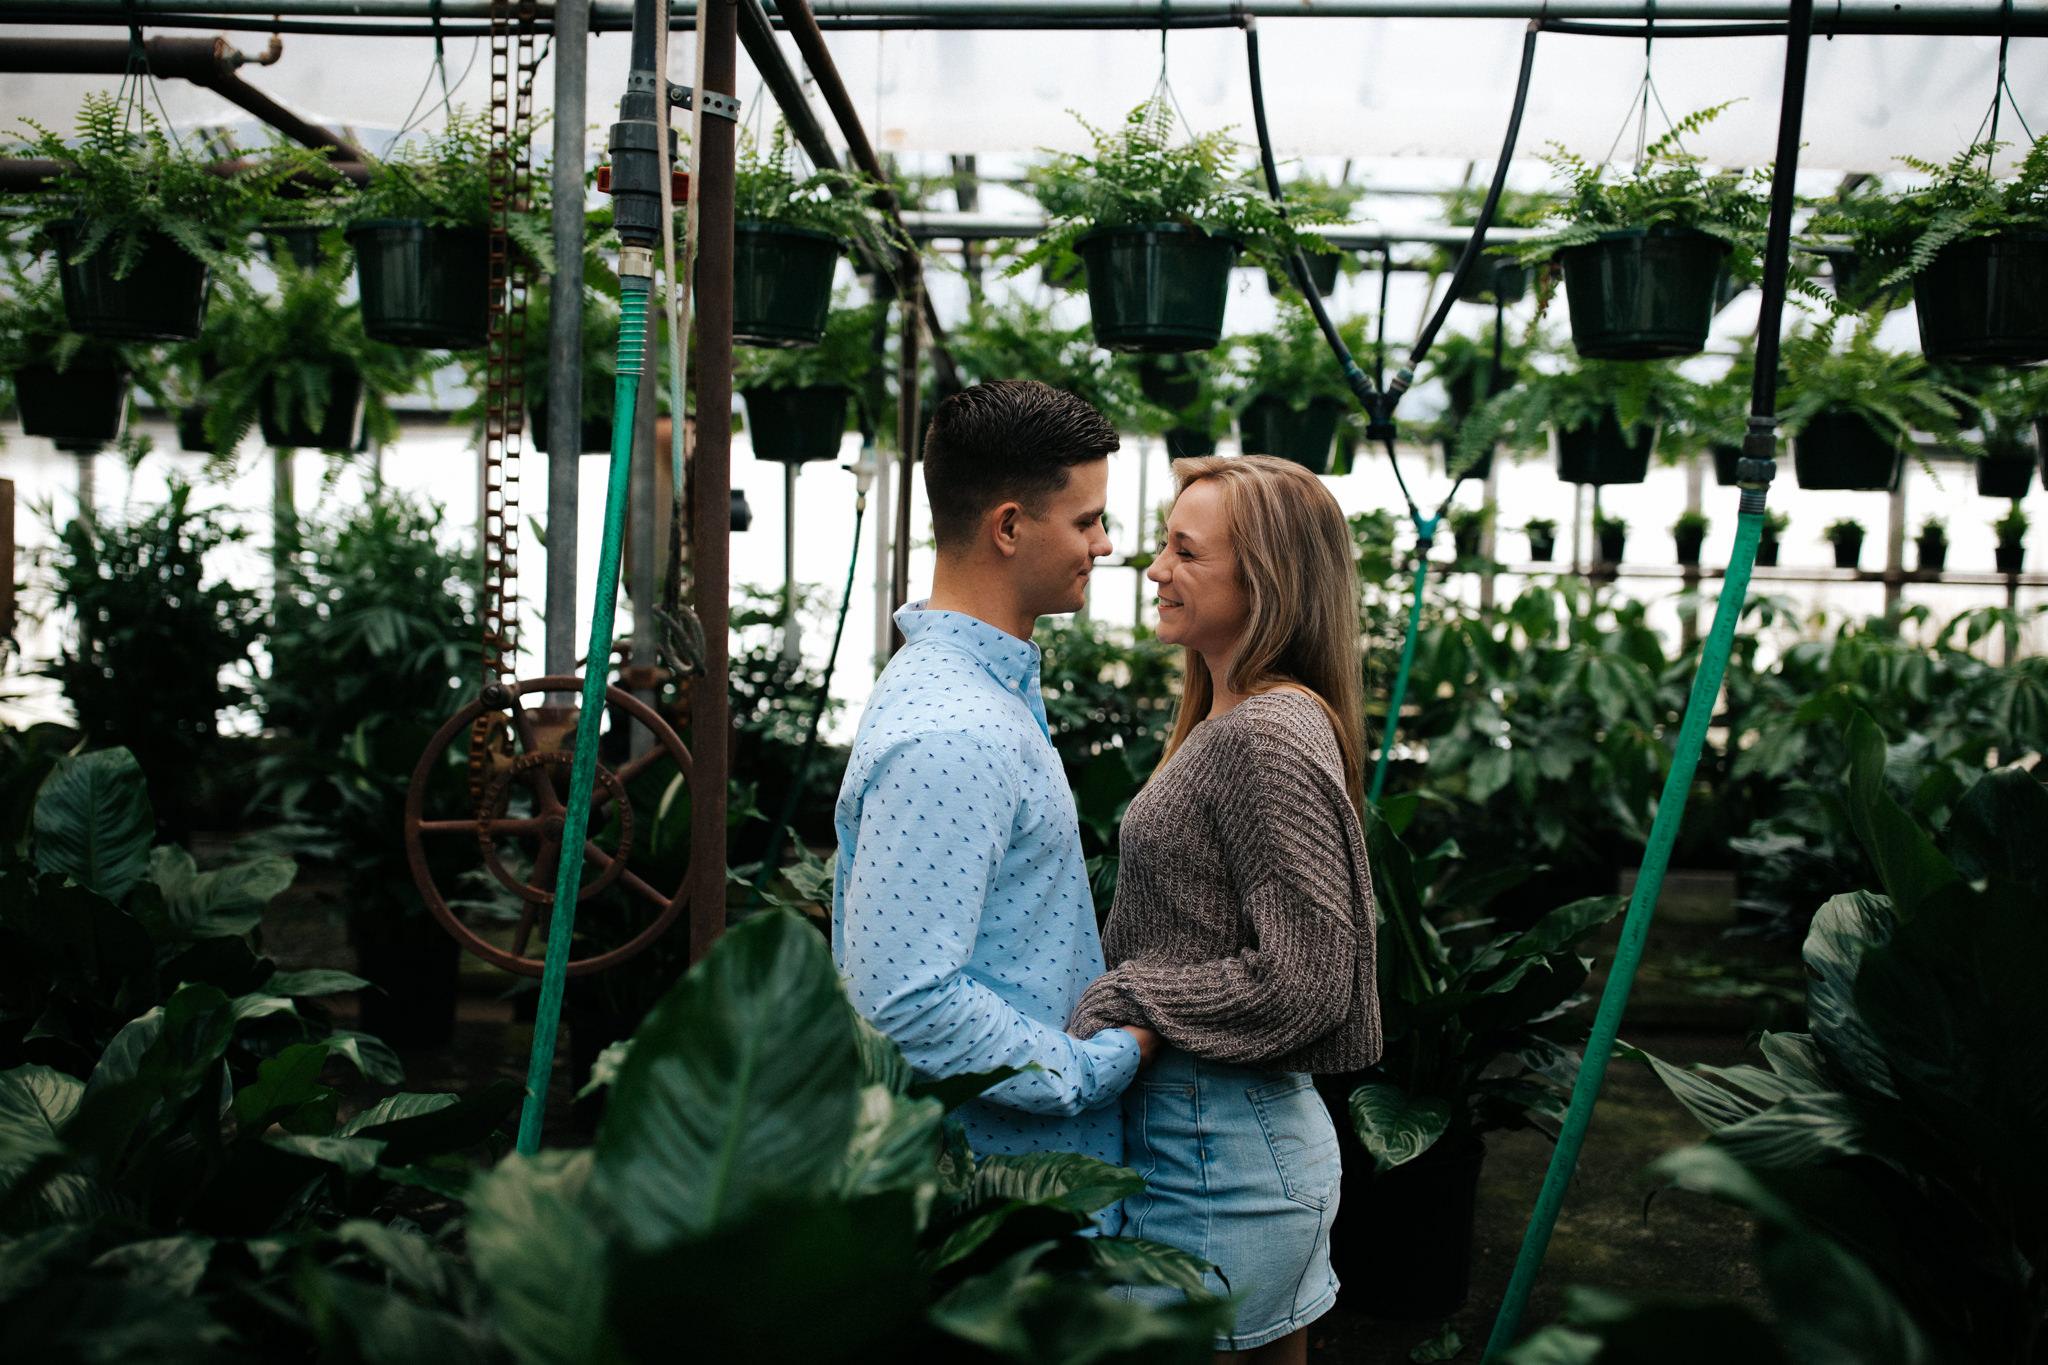 memphis-engagement-photographer-thewarmtharoundyou-greenhouse-engagement-pictures (42 of 118).jpg